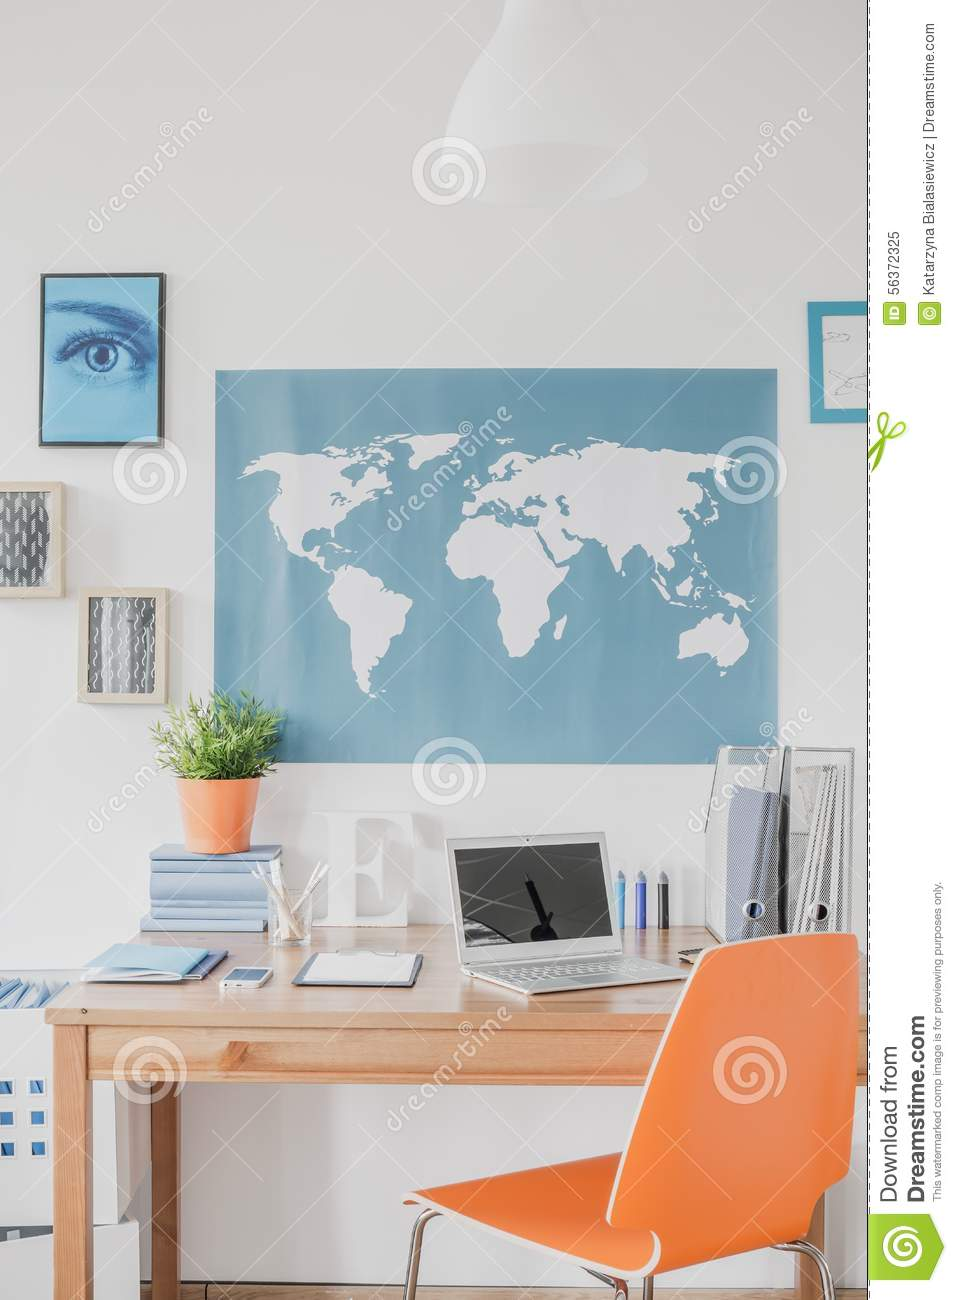 carte du monde au dessus du bureau photo stock image 56372325. Black Bedroom Furniture Sets. Home Design Ideas